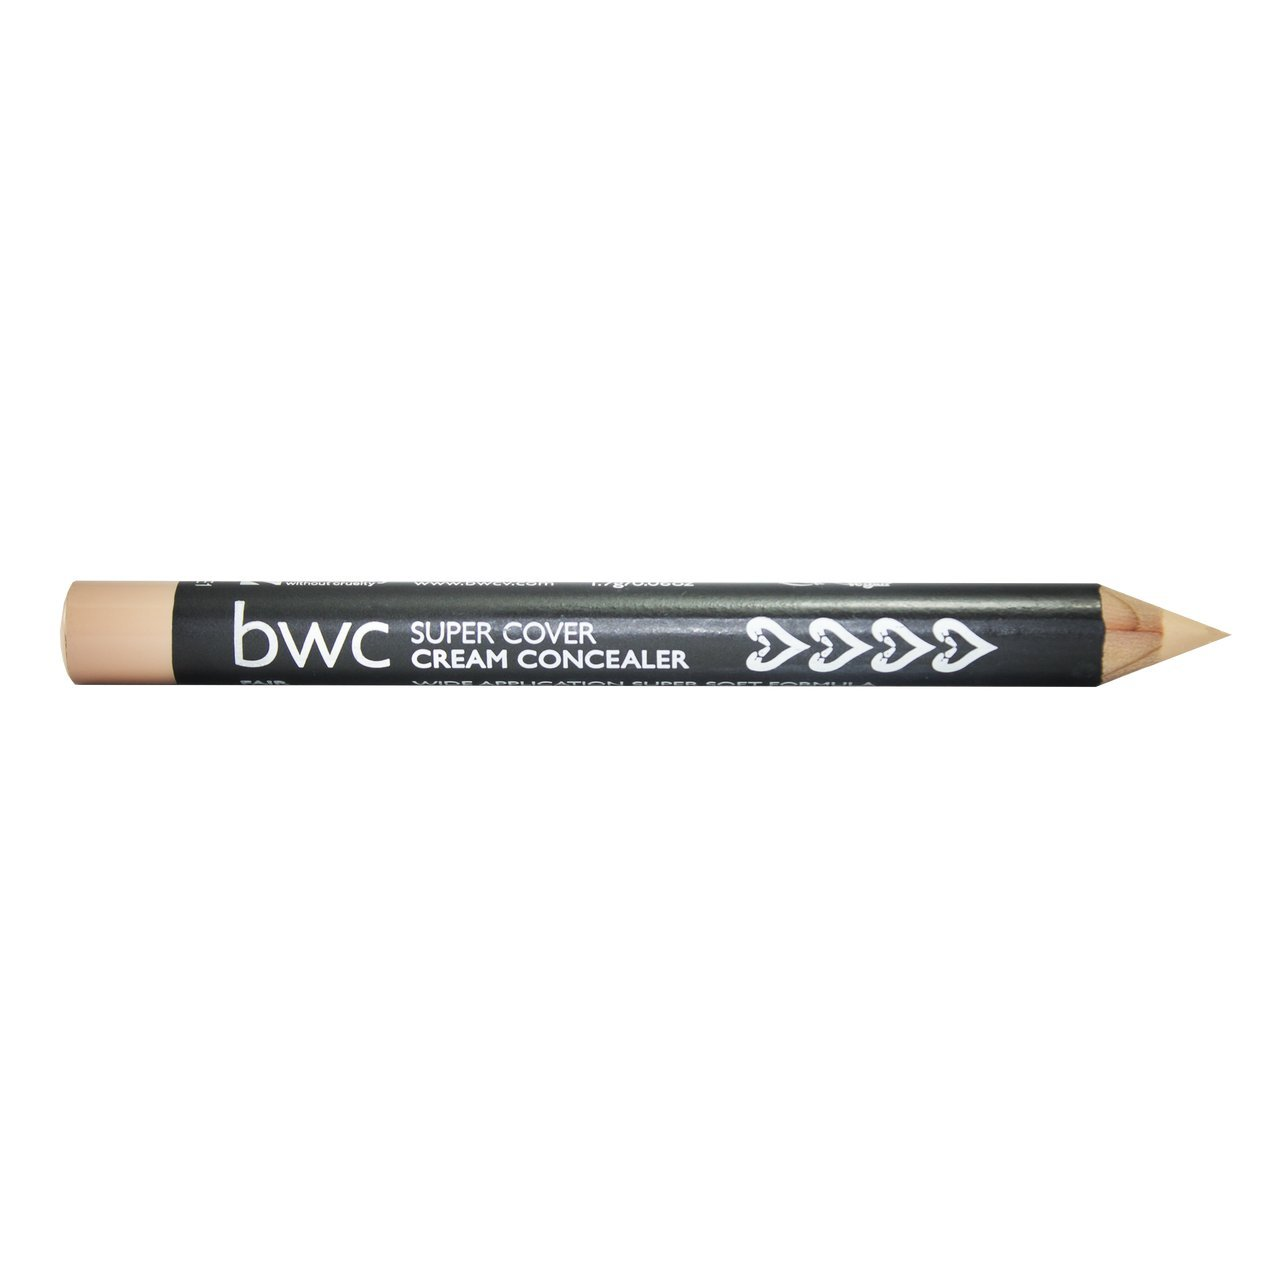 Beauty Without Cruelty Supercover Cream Concealer Pencil Fair Ultra Glow Cosmetics Ltd BE-2165